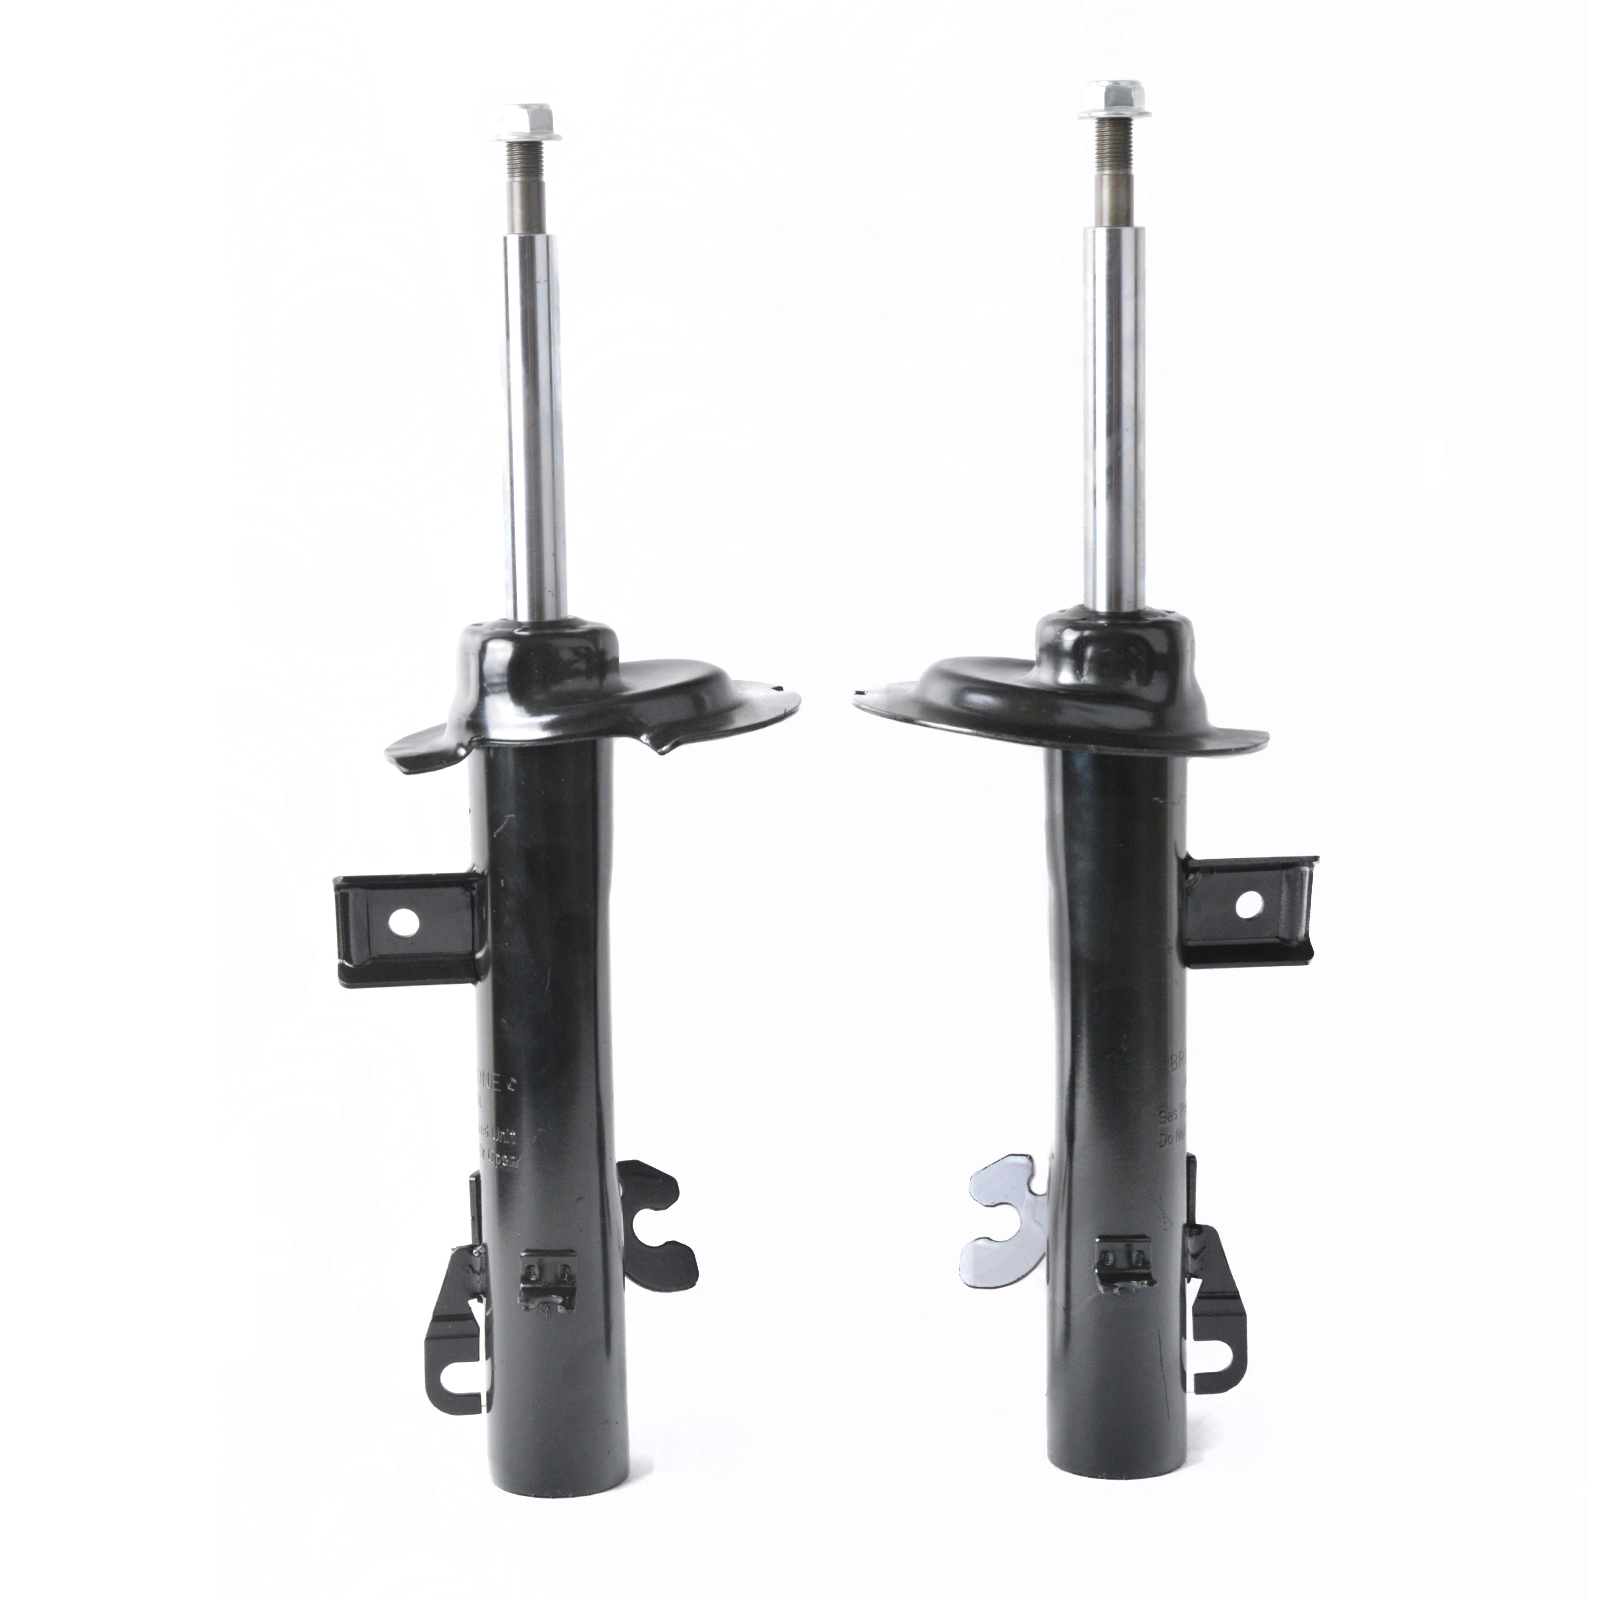 Front Pair Shocks & Struts Absorber For 2002 2003 2004 2005 2006 Mini Cooper 72266 72265Front Pair Shocks & Struts Absorber For 2002 2003 2004 2005 2006 Mini Cooper 72266 72265